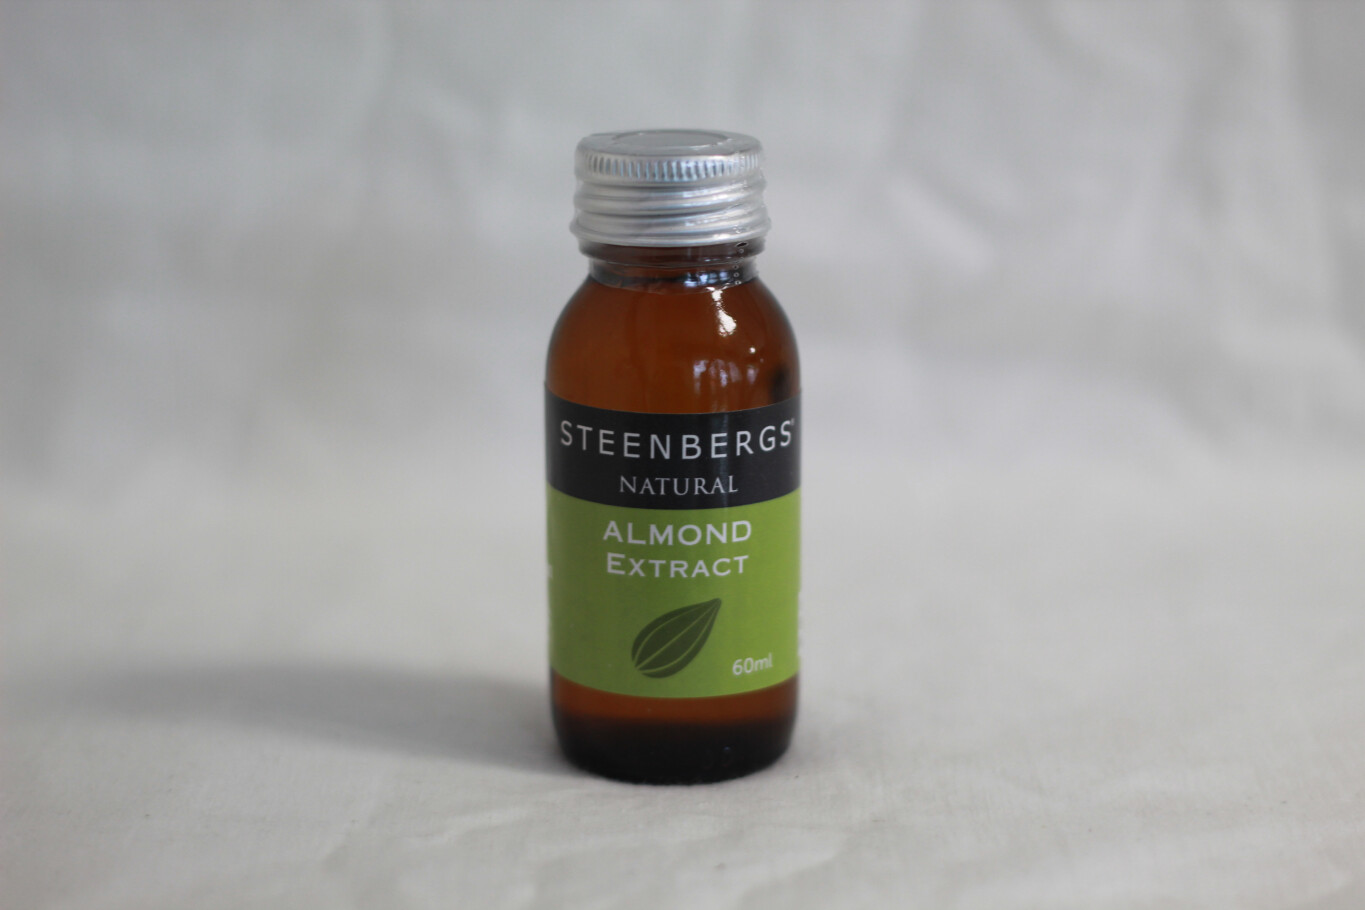 Natural Almond Extract 60ml